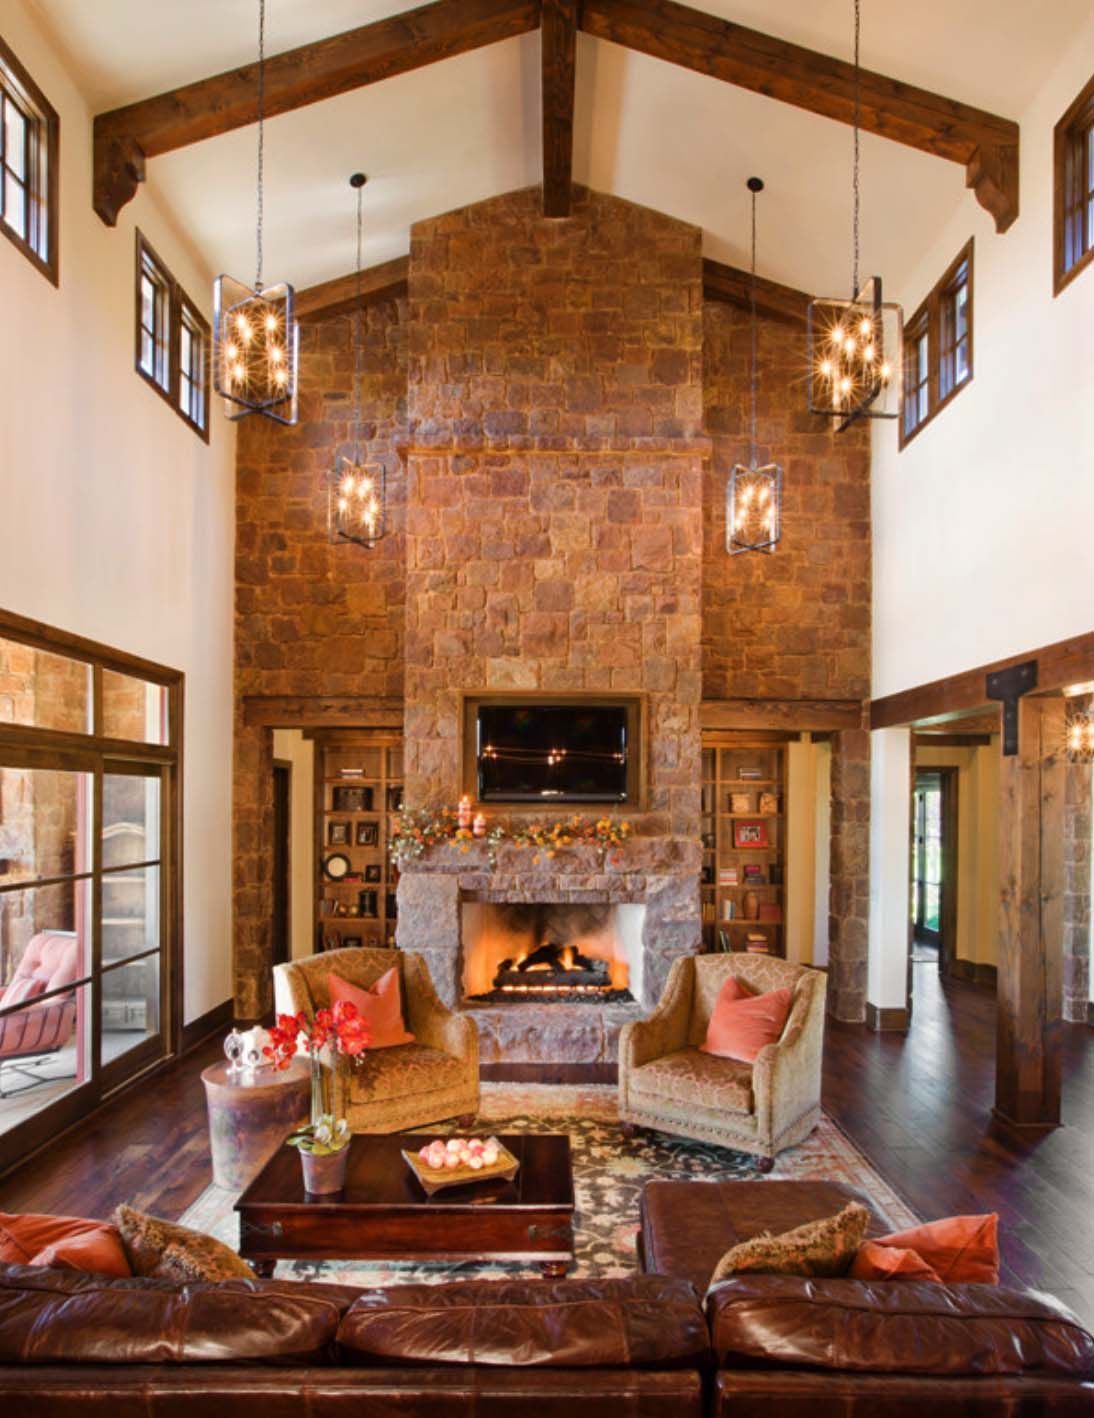 Rustic Texas Hill Country Home Blends With Old World Elegance